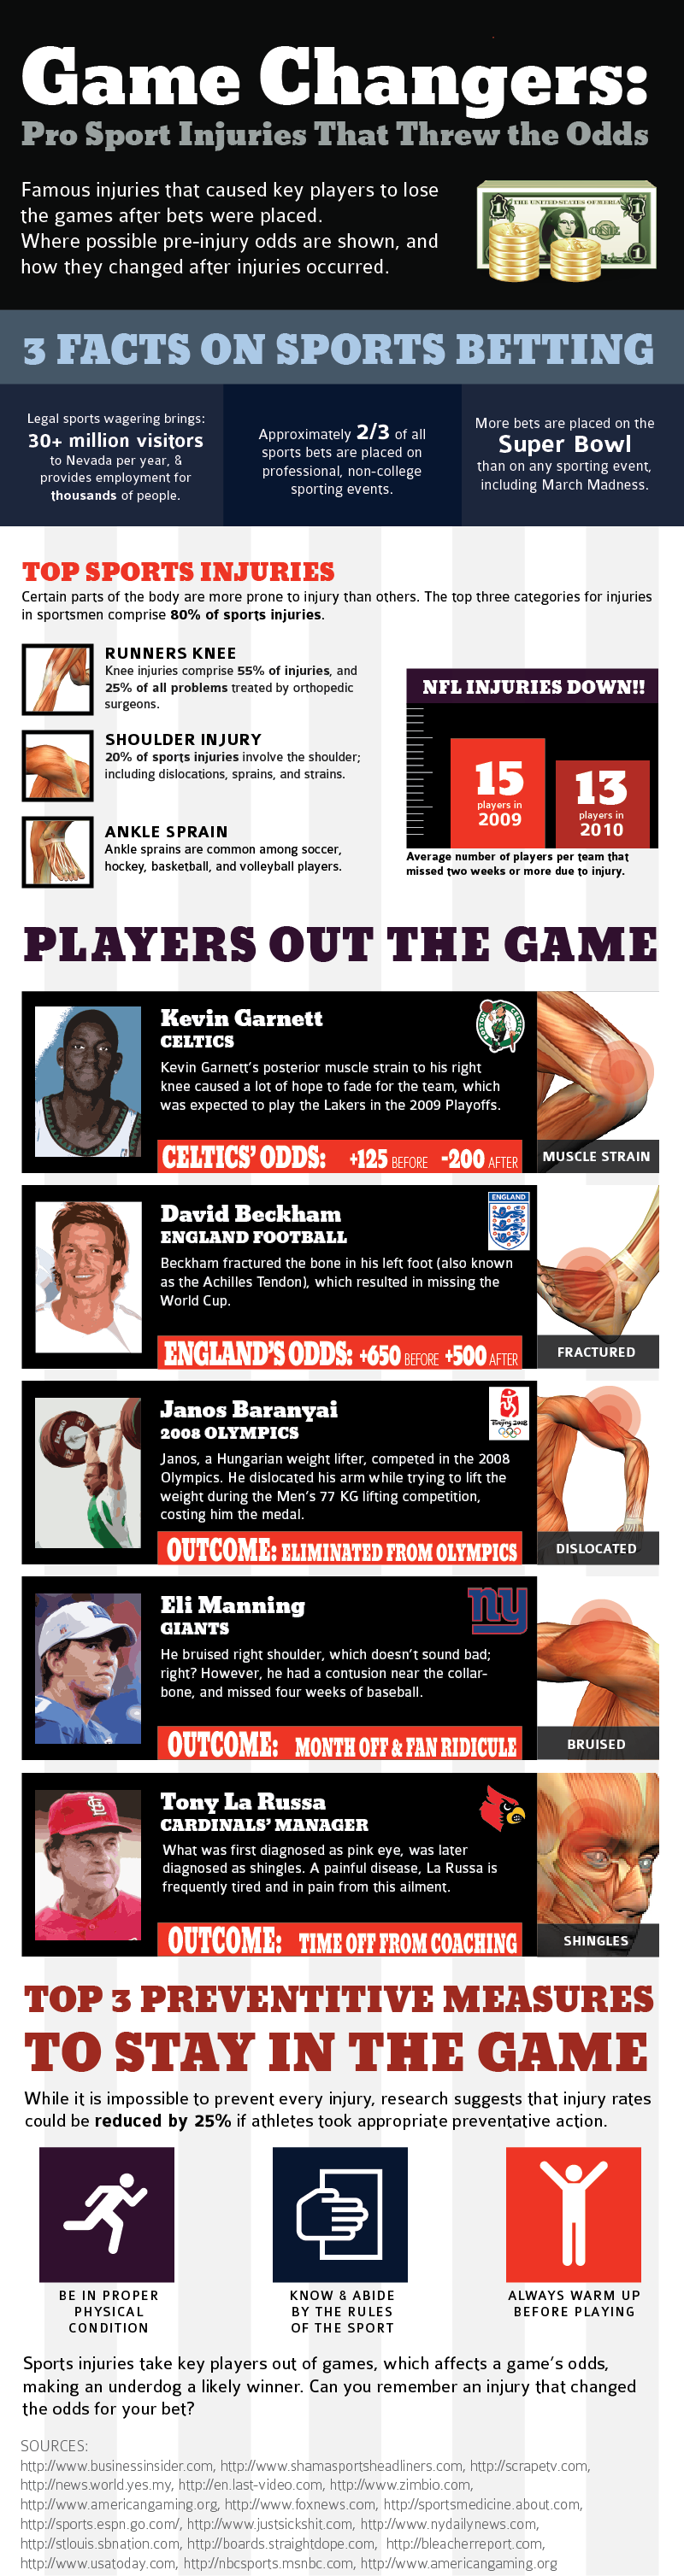 Pro Sport Injuries That Threw the Odds